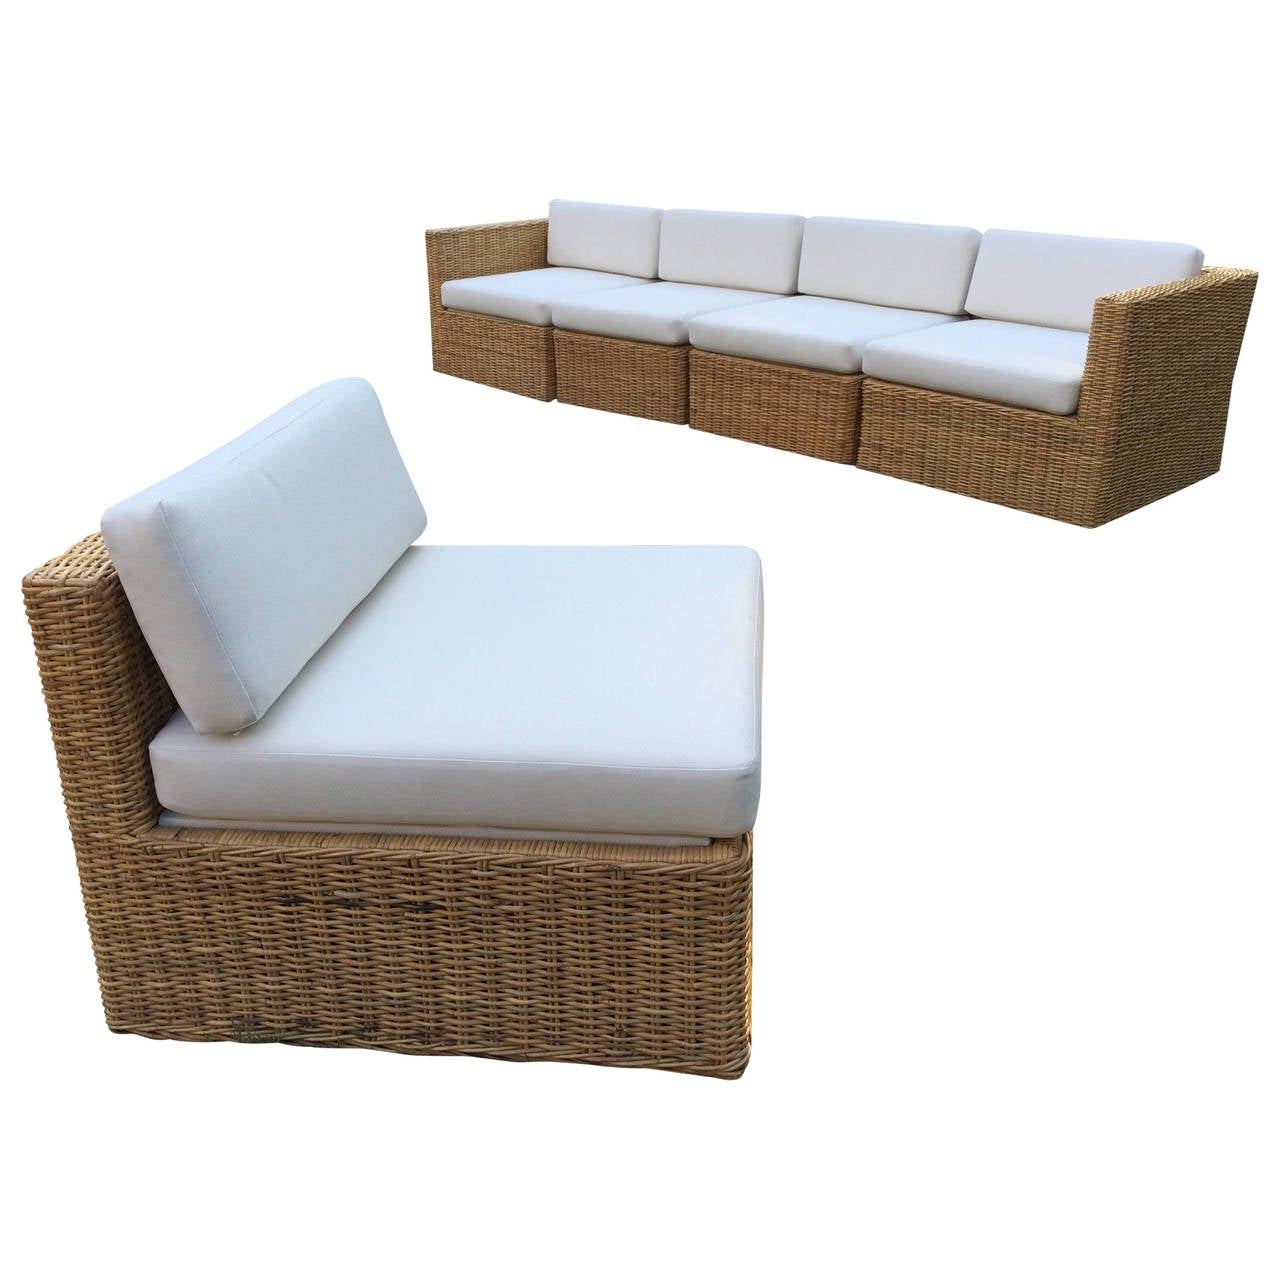 wicker rattan sectional sofas sofa menzilperde net. Black Bedroom Furniture Sets. Home Design Ideas